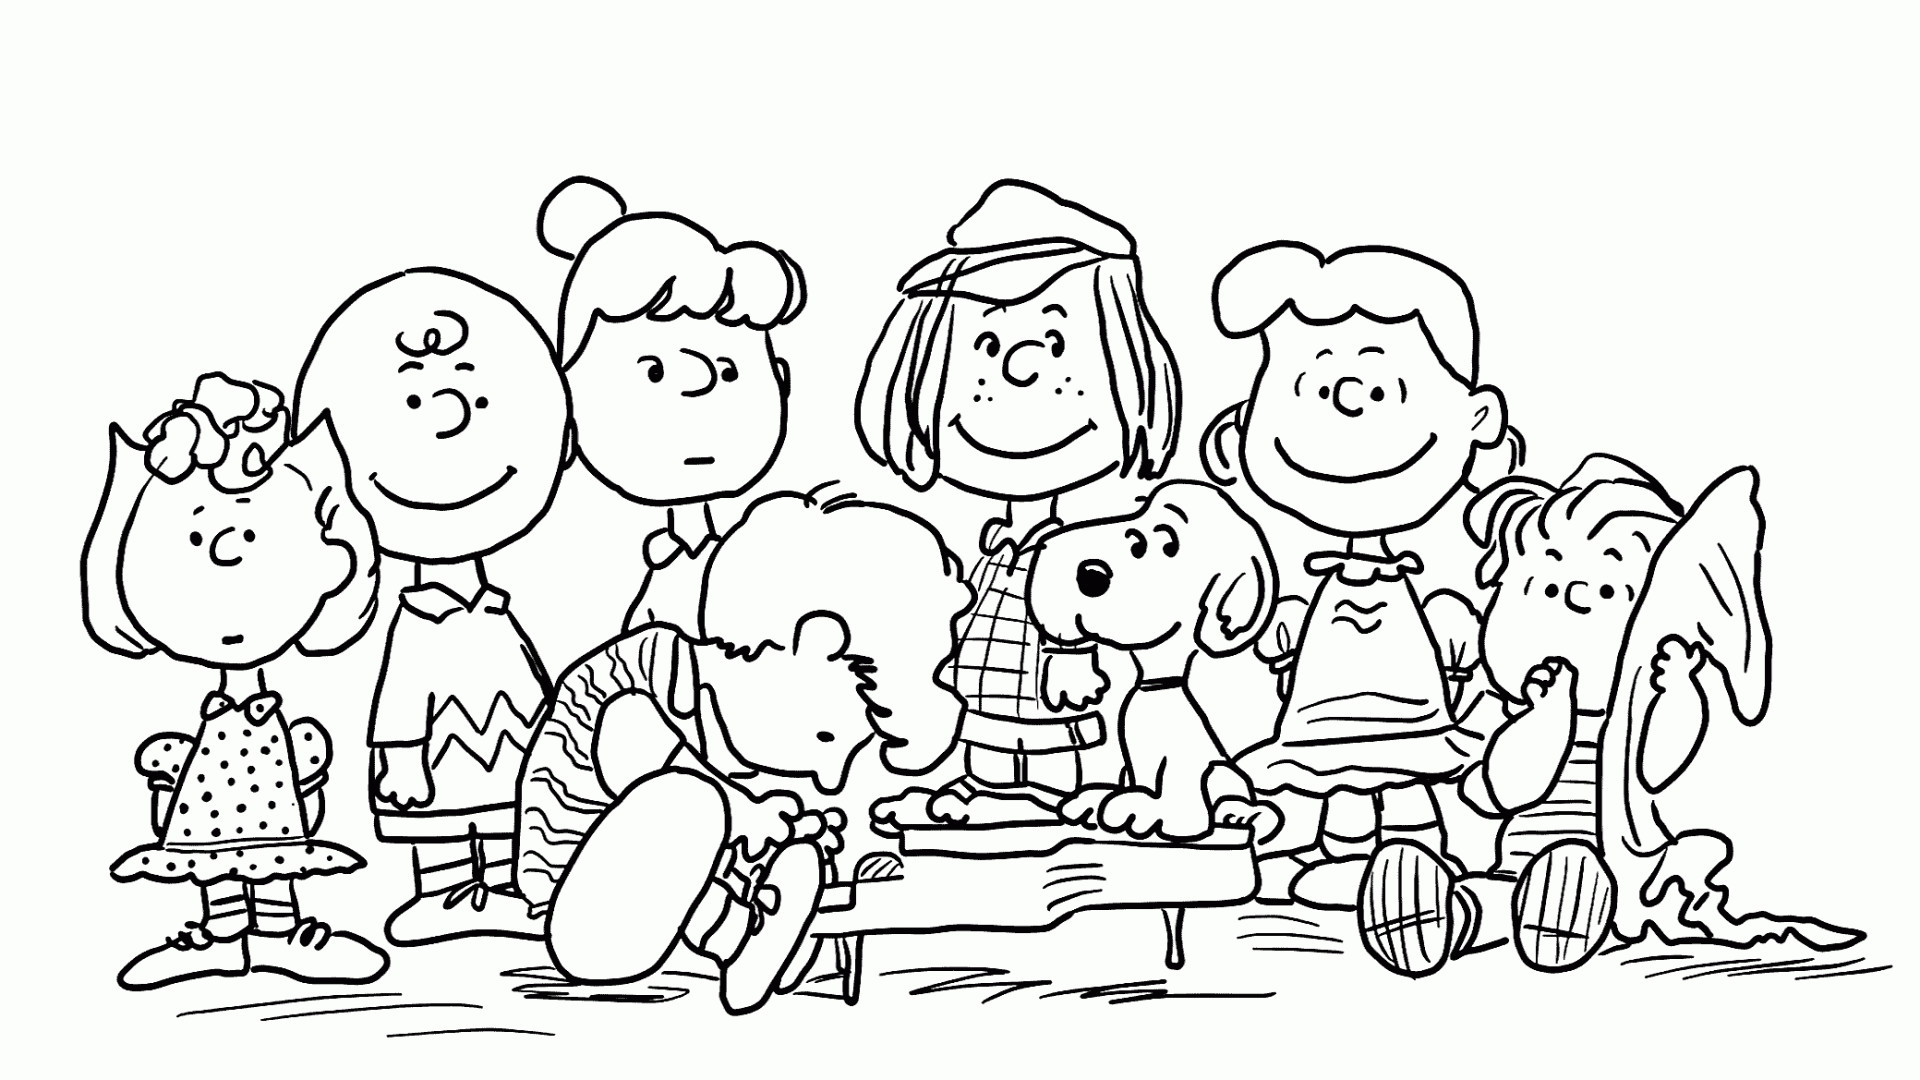 Res: 1920x1080, Snoopy And Charlie Brown Christmas Characters Coloring Pages Free Charlie  Brown And Snoopy Games Free Kids